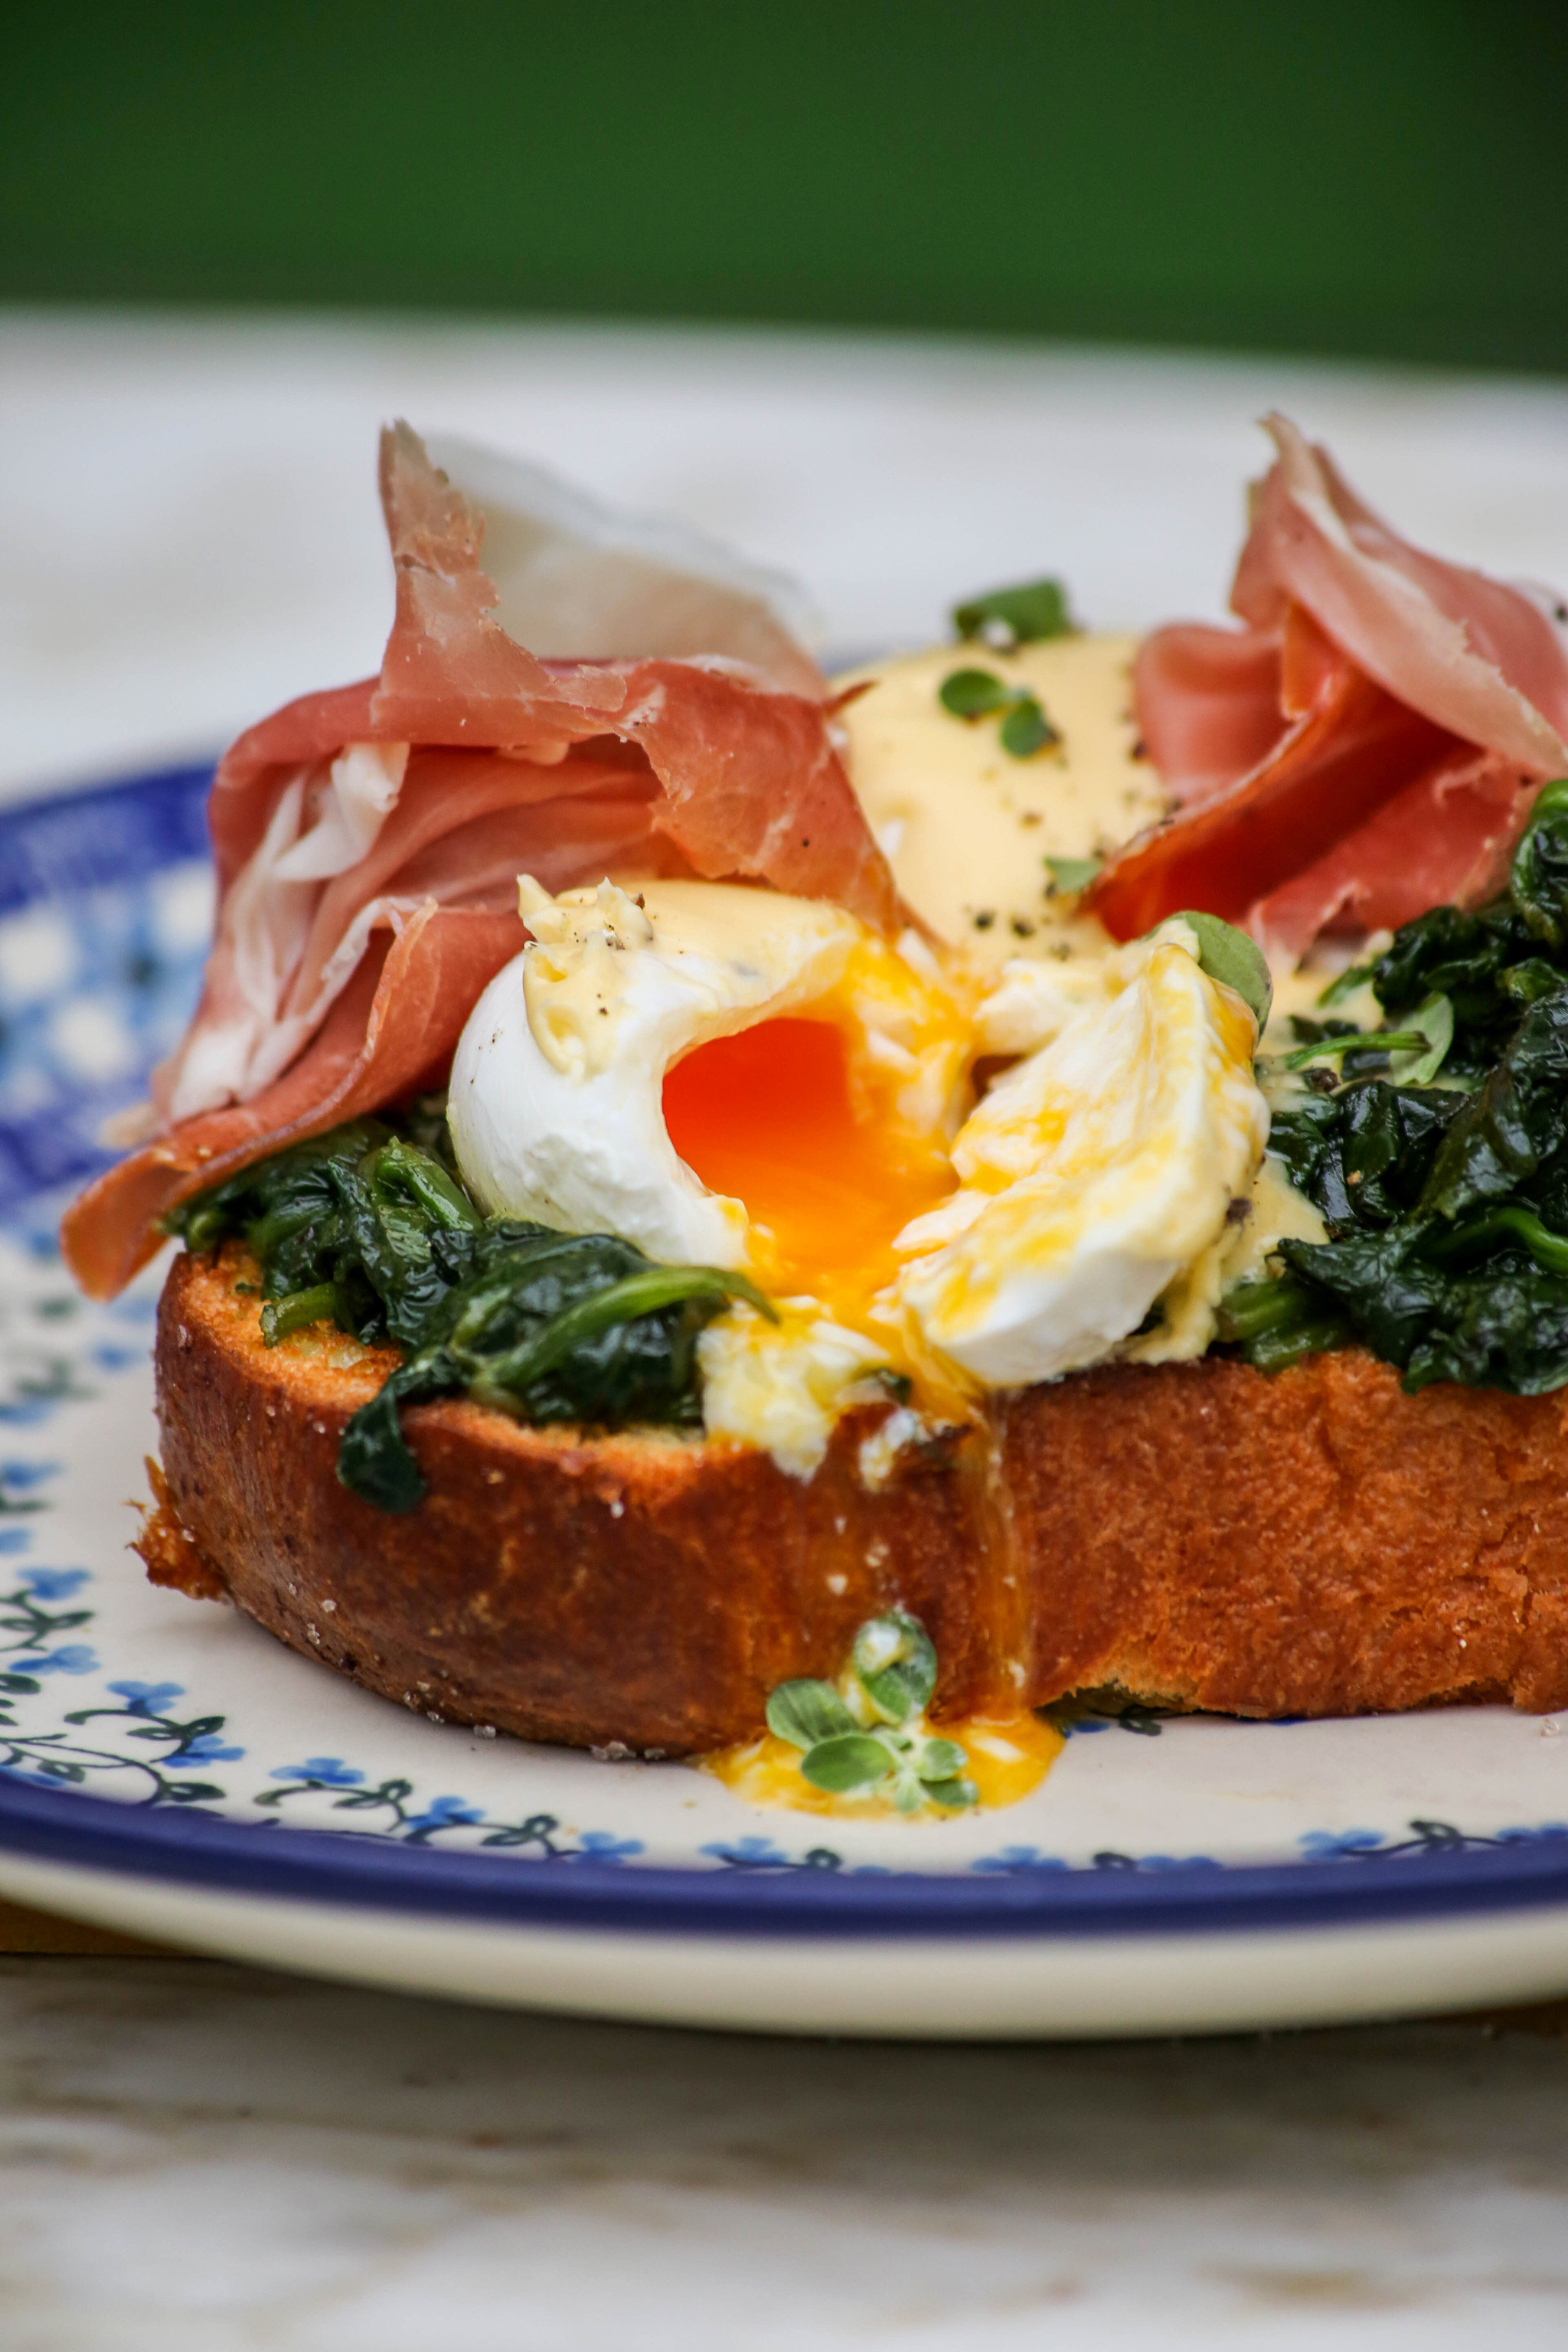 Food + Drink France Paris food plate dish meal smoked salmon breakfast bruschetta slice hors d oeuvre produce meat brunch cuisine lunch vegetable salmon prosciutto sliced arranged fresh